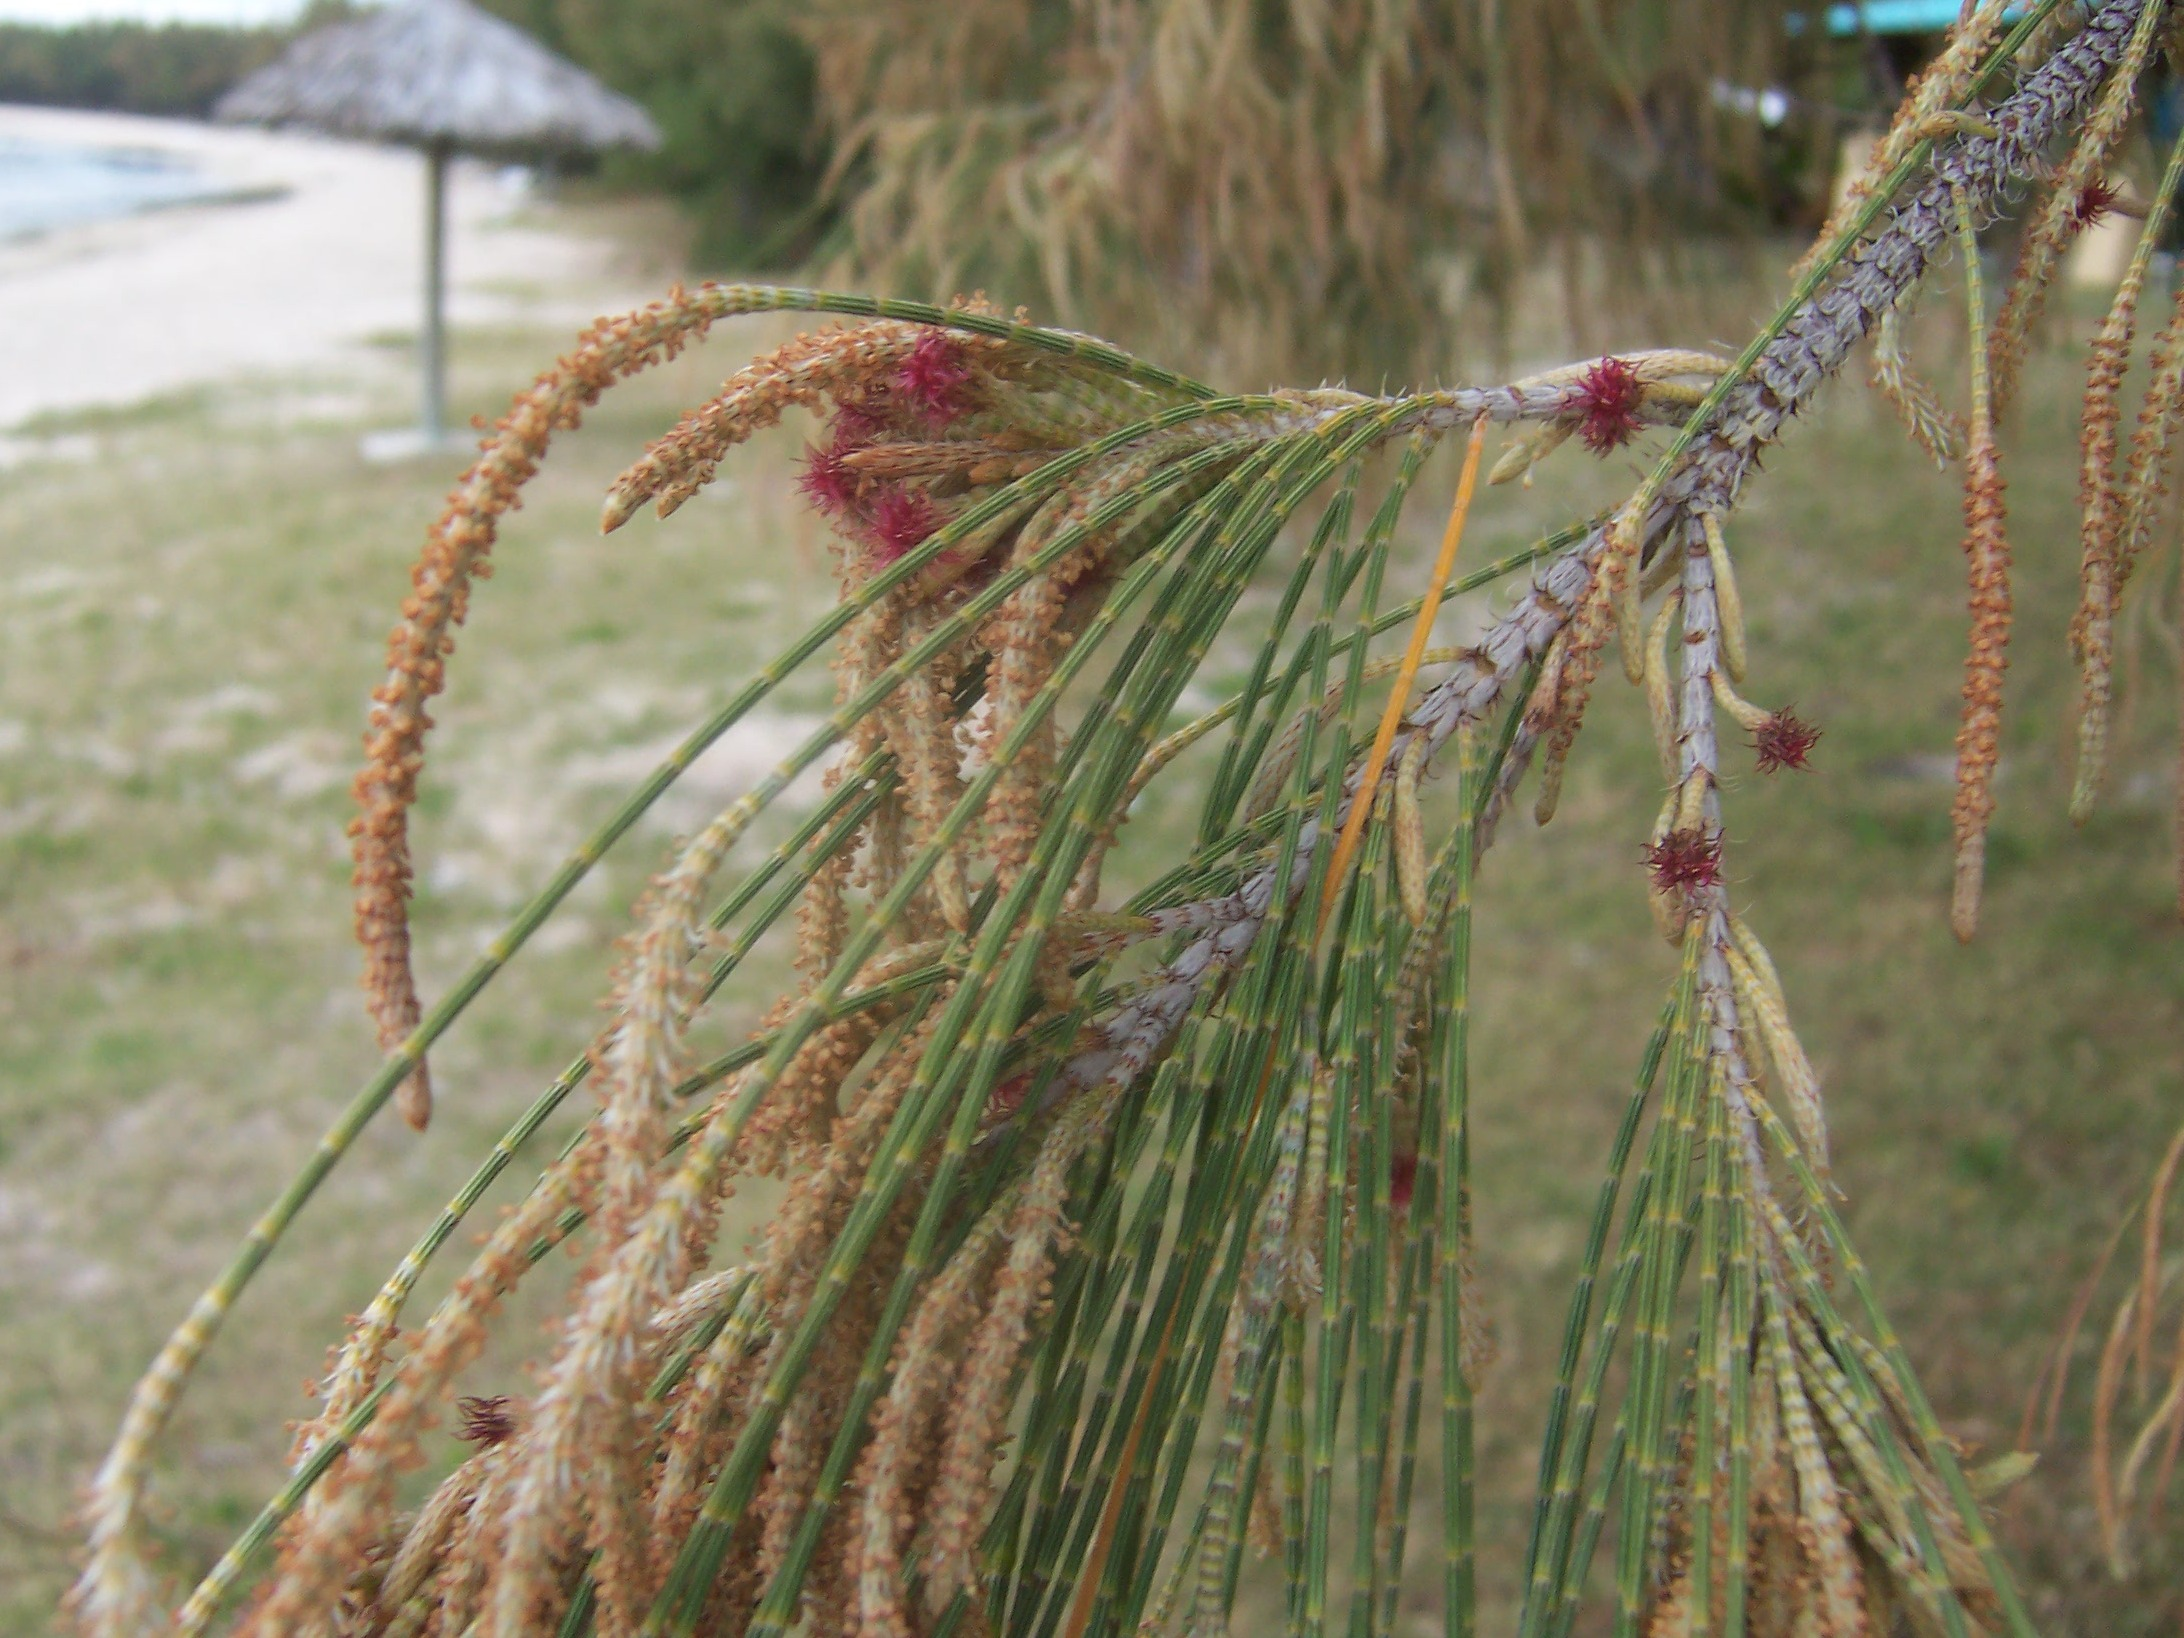 Casuarina equisetifolia  with catkin-like male flowers and smaller, red female flowers.